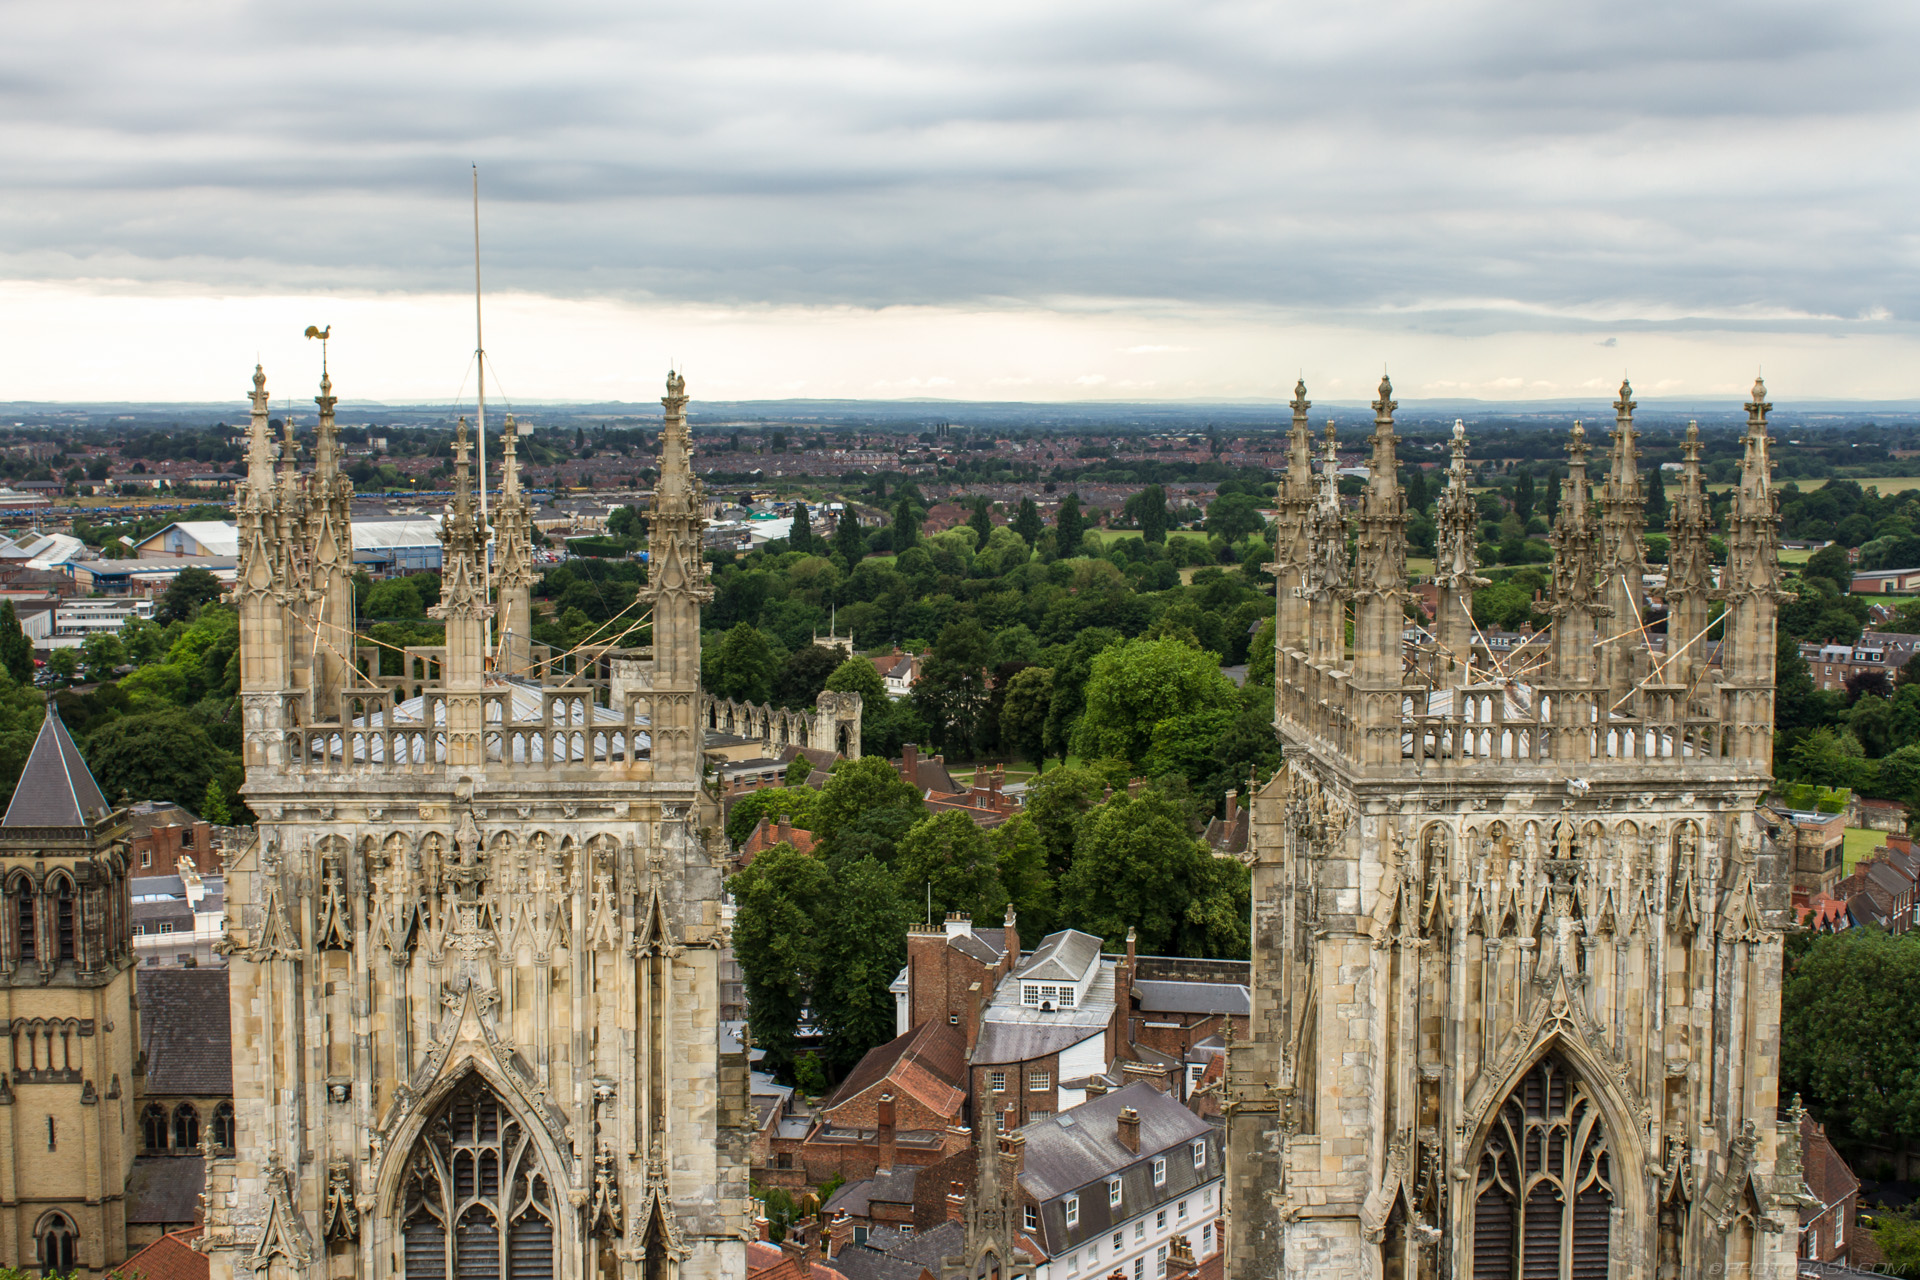 http://photorasa.com/places/yorkminster-cathedral/attachment/two-towers/